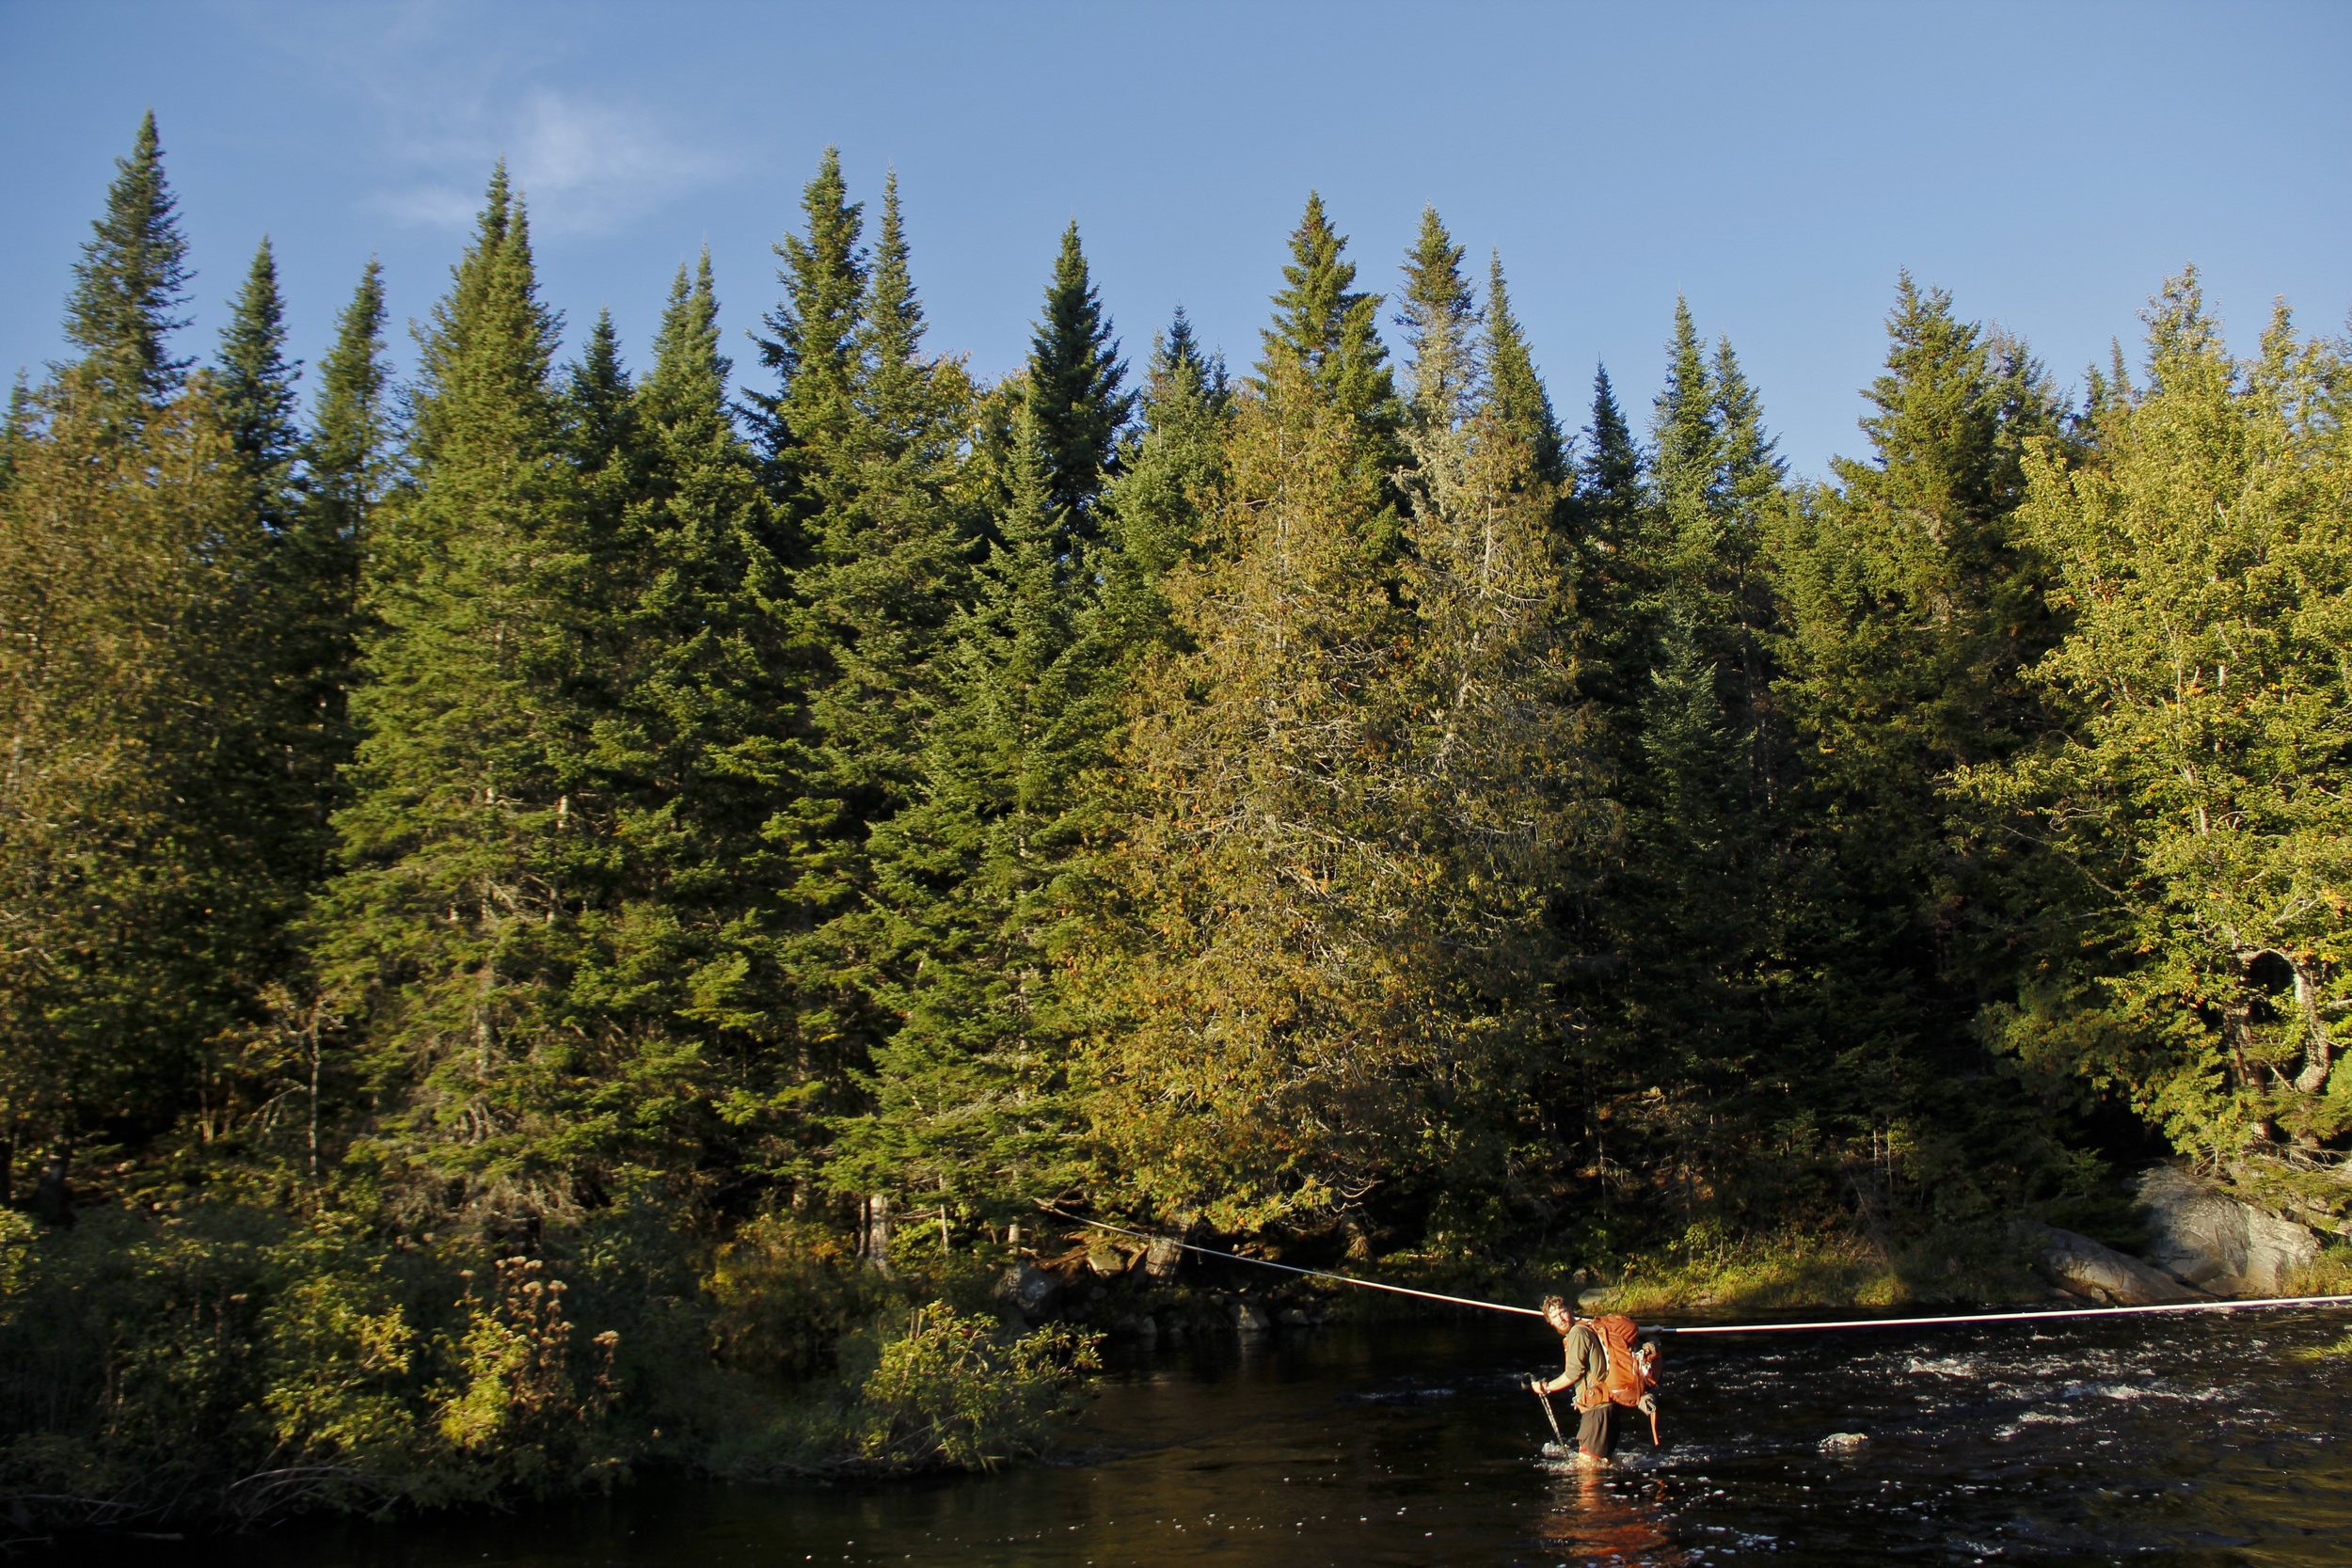 One of the many river crossings on the home stretch, the 100 Mile Wilderness of Maine.